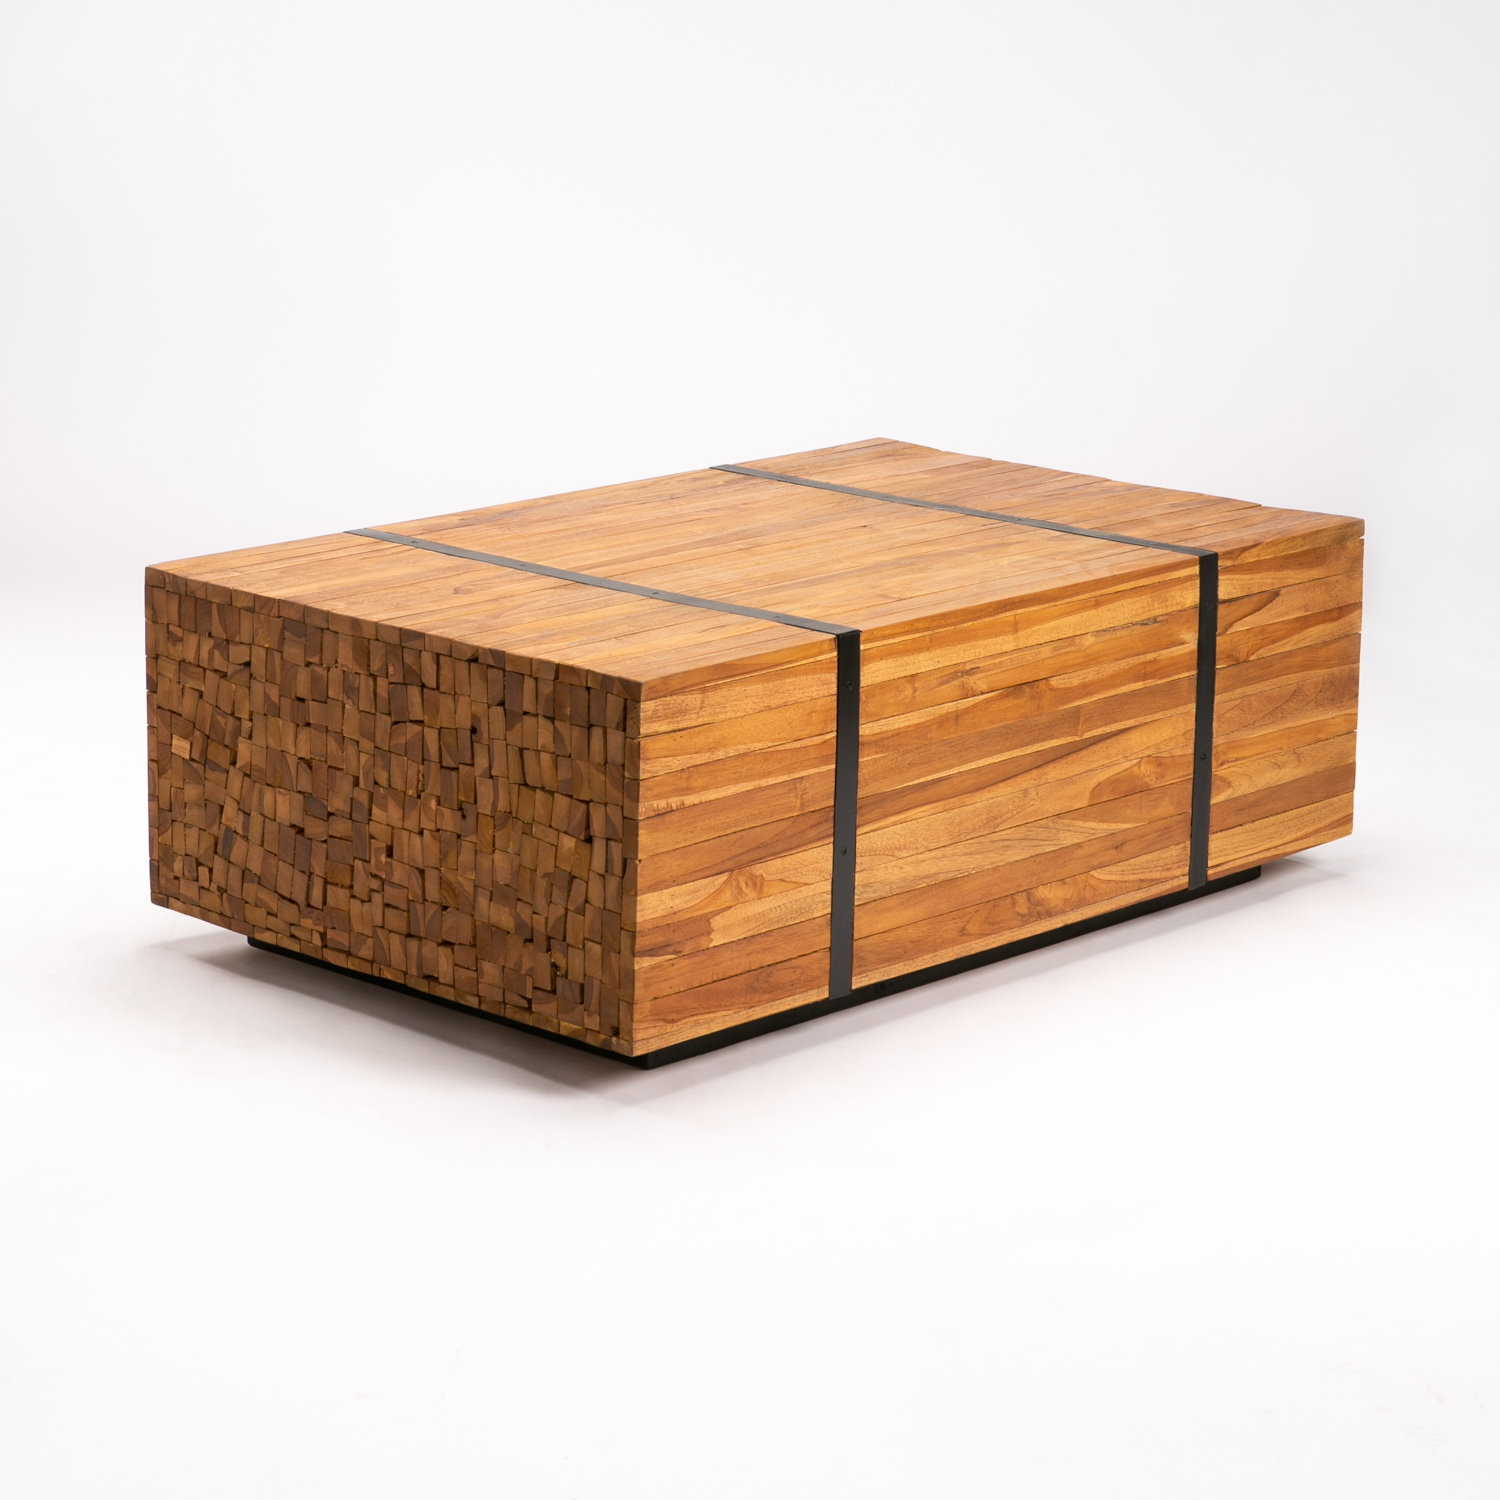 Nox 110x70cm Coffee Table - Natural